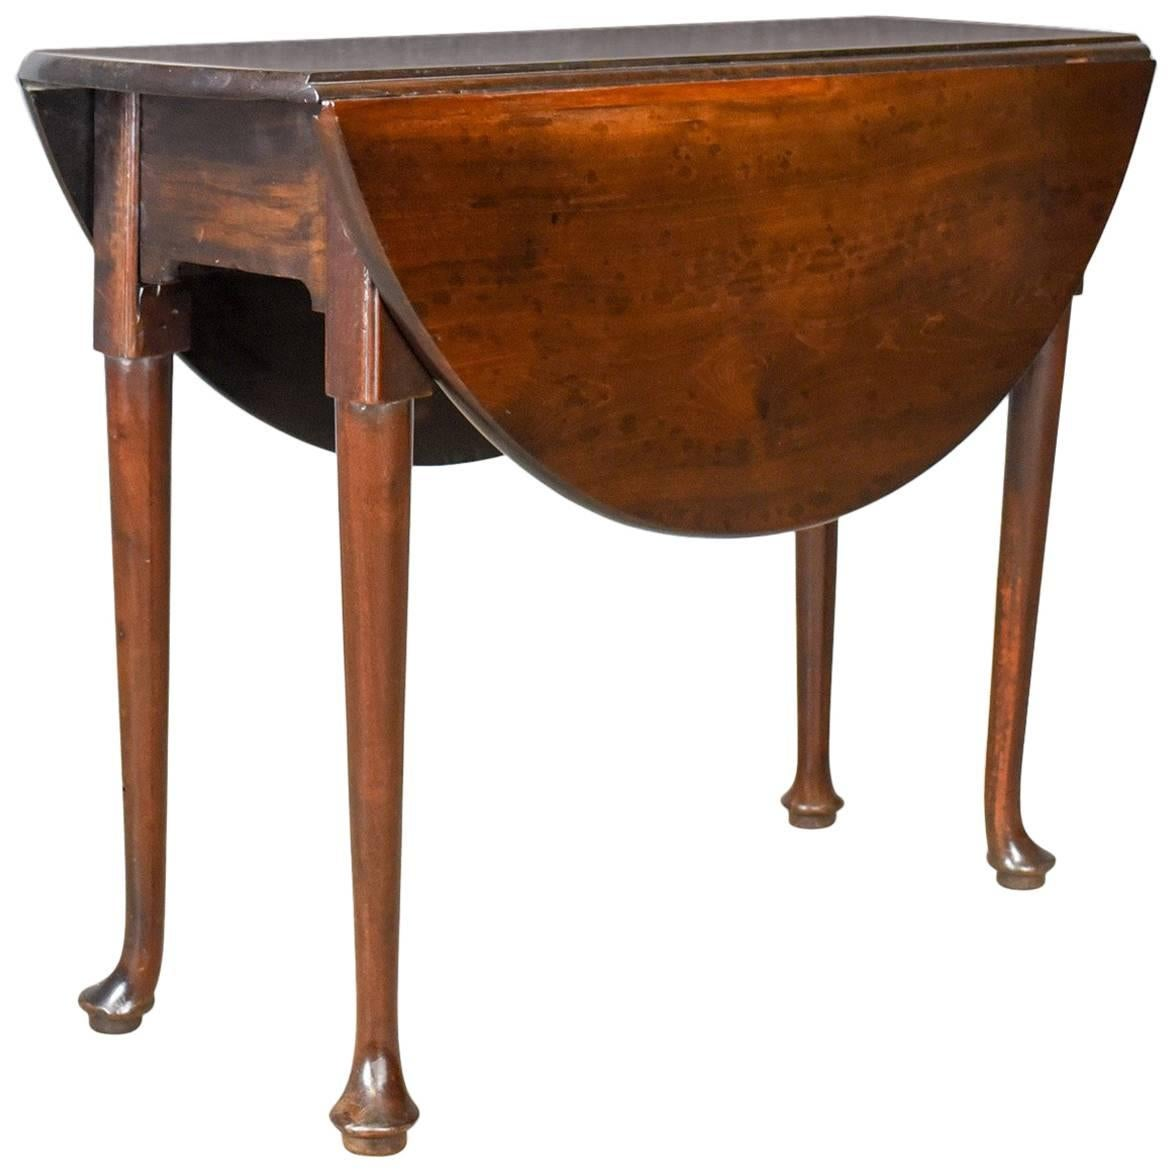 Superieur Antique Drop Leaf Table, Mahogany, English, Georgian, Dining, Circa 1760